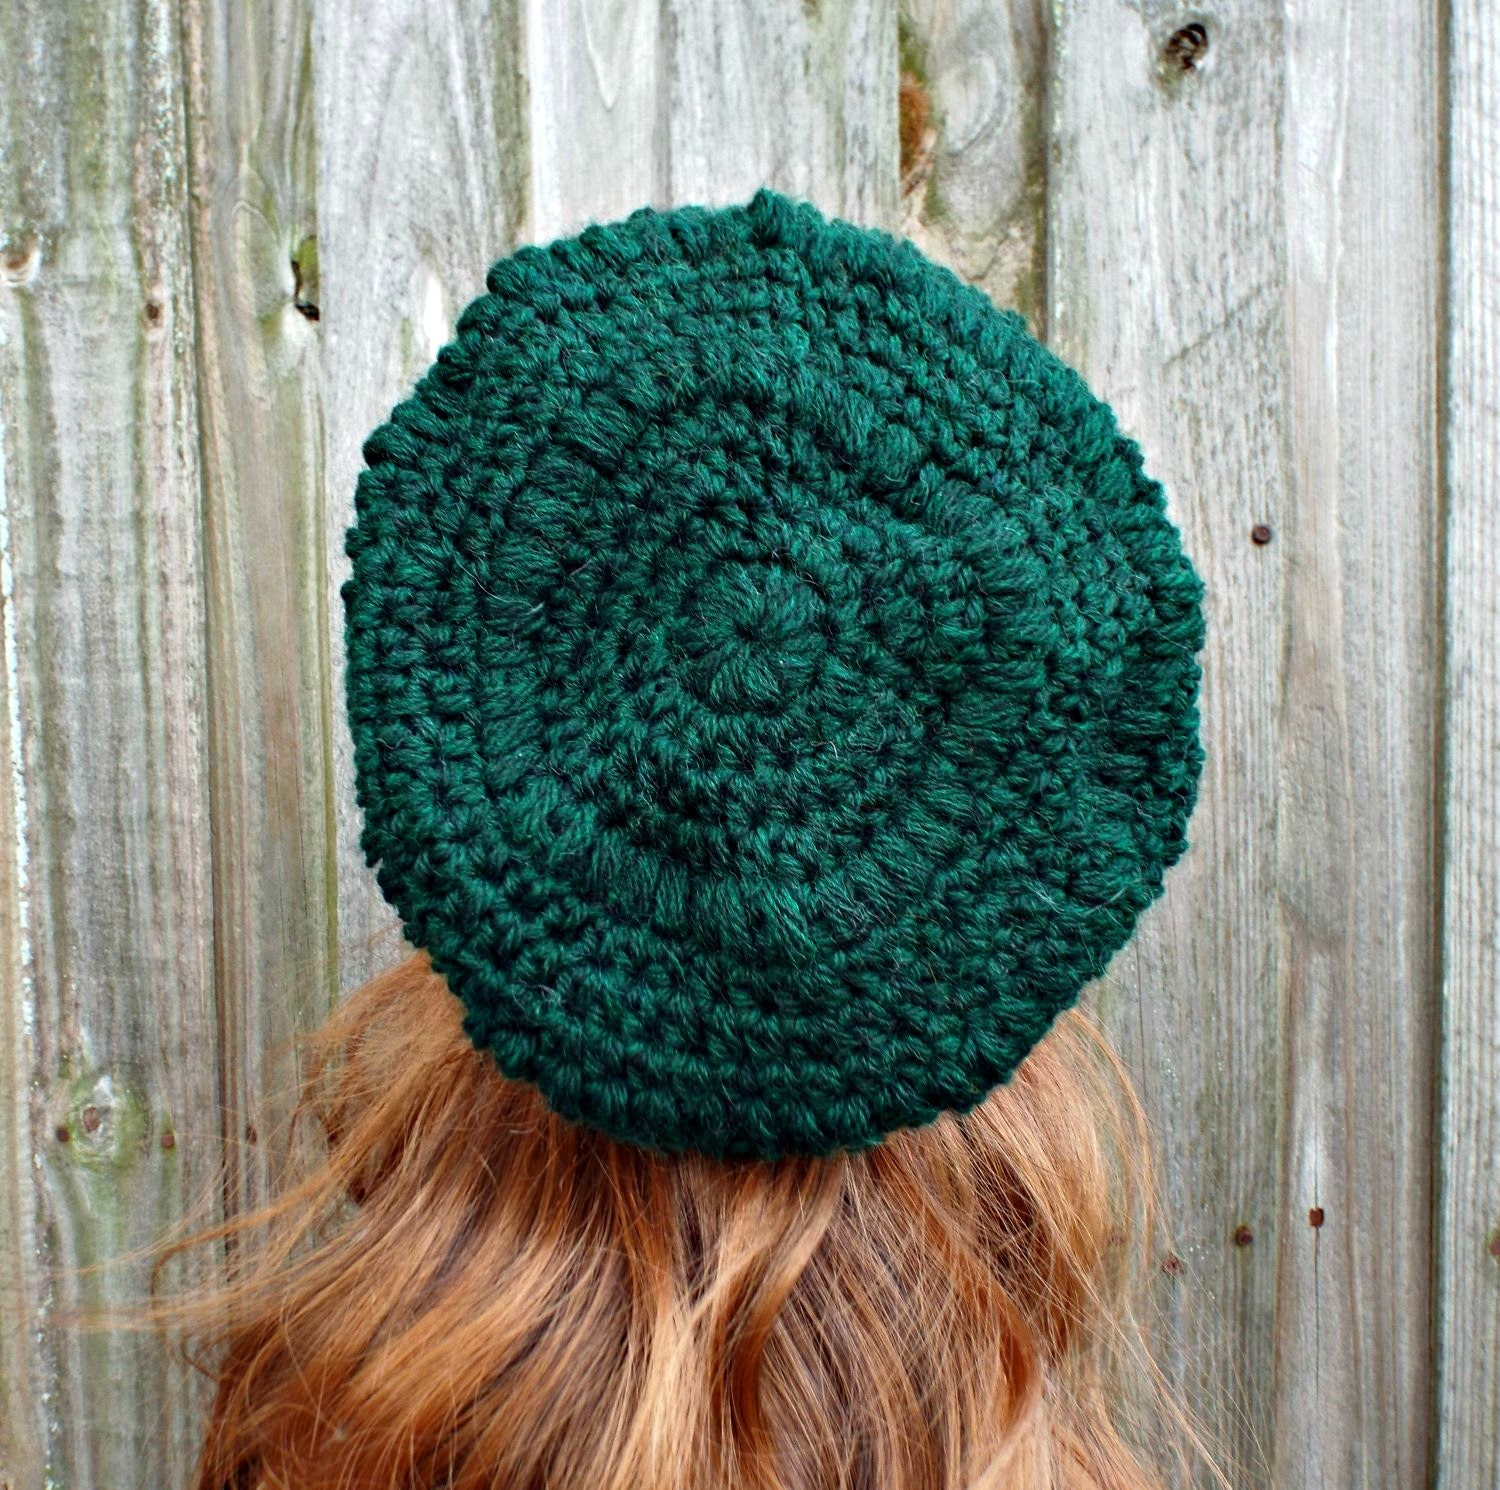 c884d3f3d58906 Hunter Green Crochet Hat Womens Hat - Penelope Puff Stitch Slouchy ...